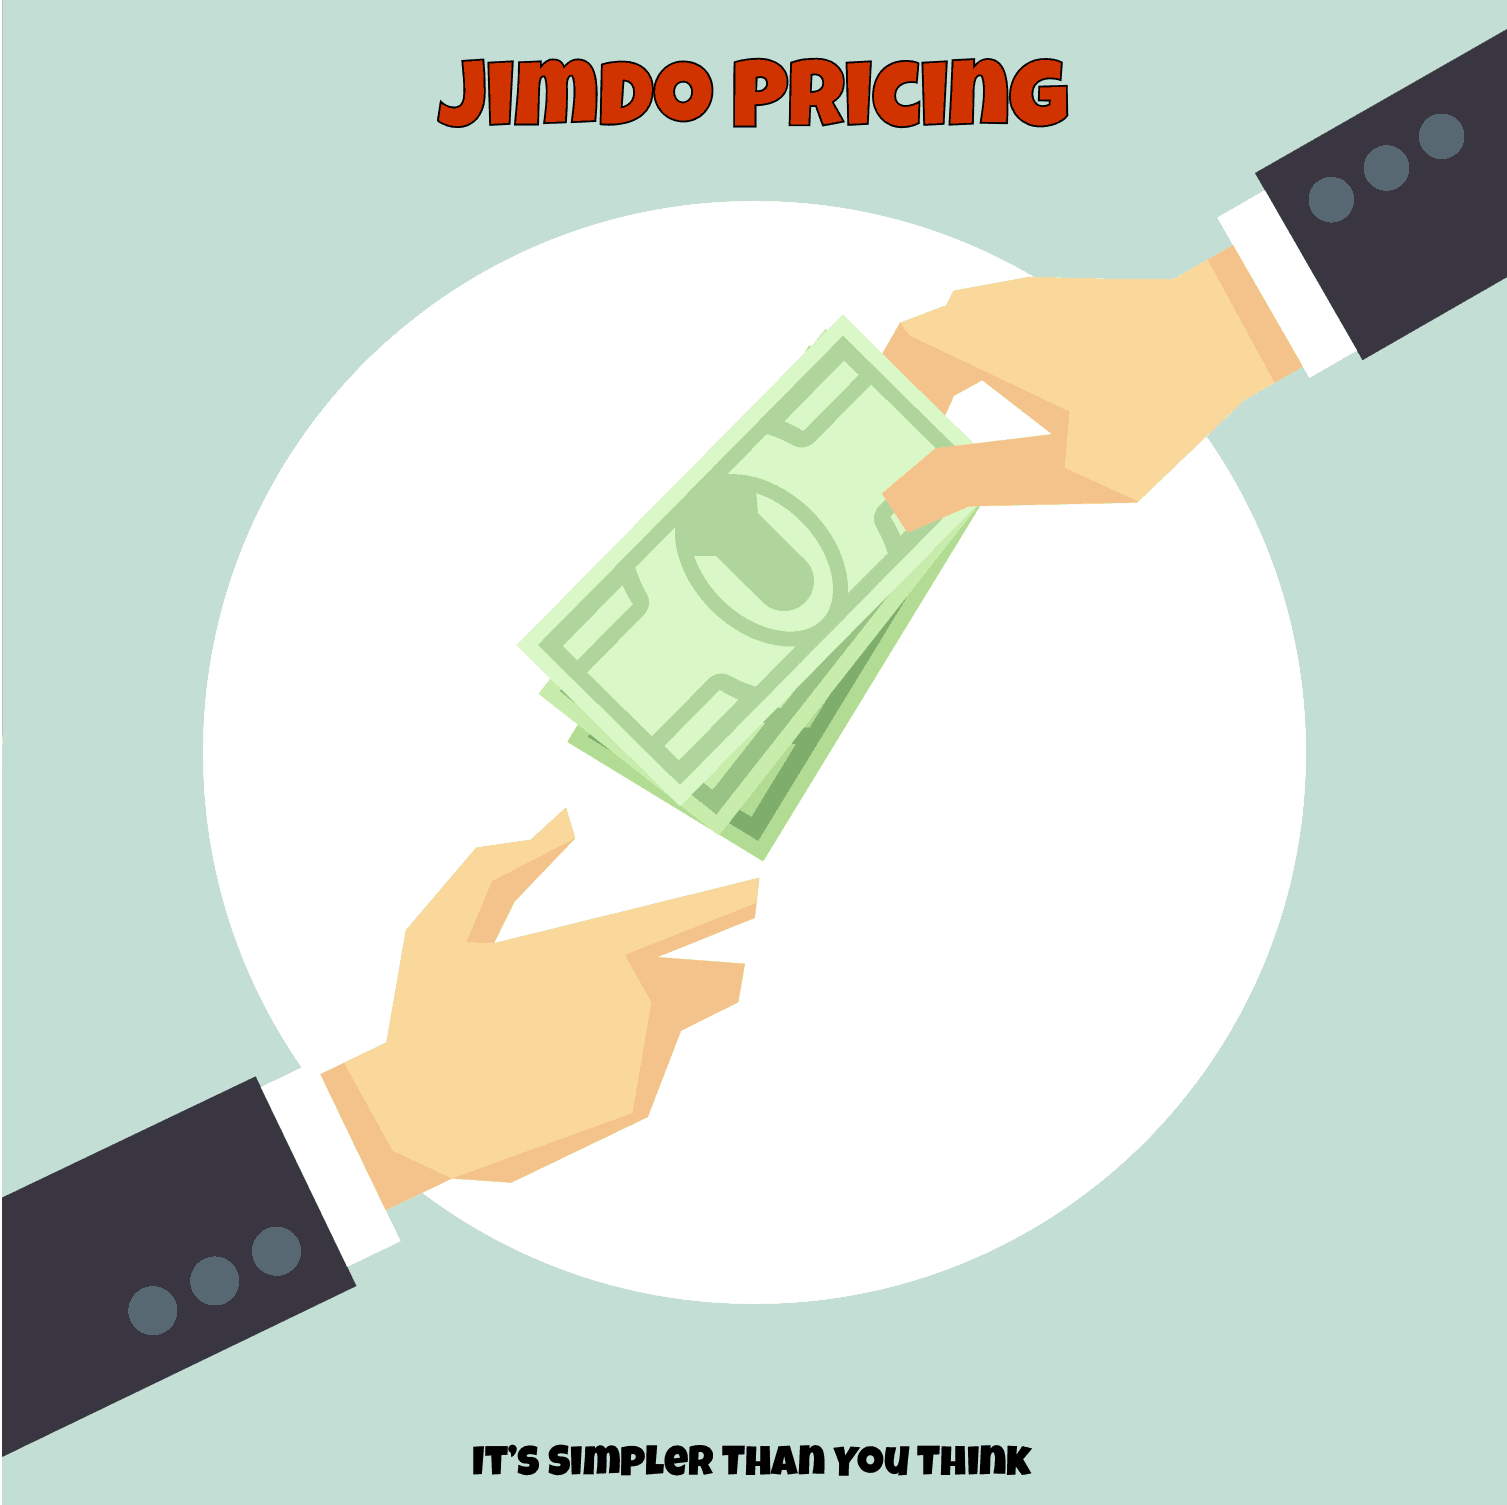 jimdo pricing